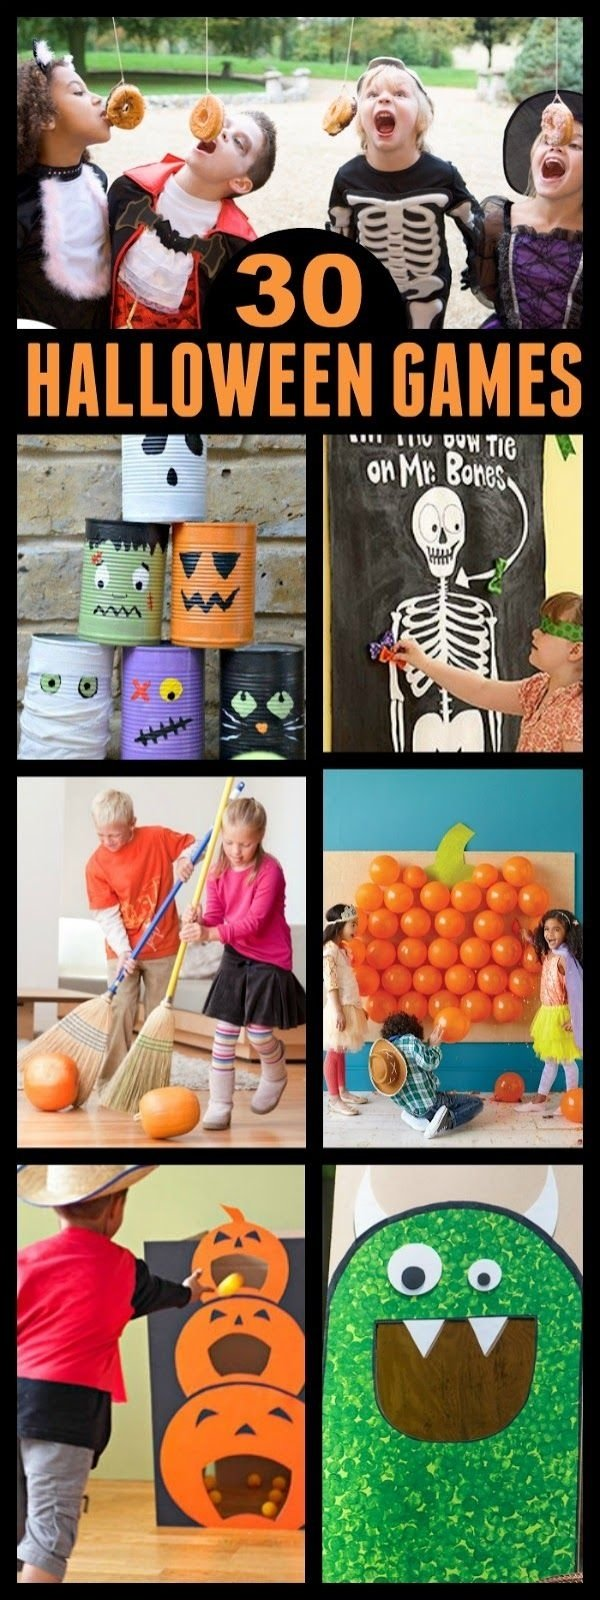 10 Nice Halloween Party Game Ideas For Adults halloween games for kids halloween games game ideas and 30th 8 2020